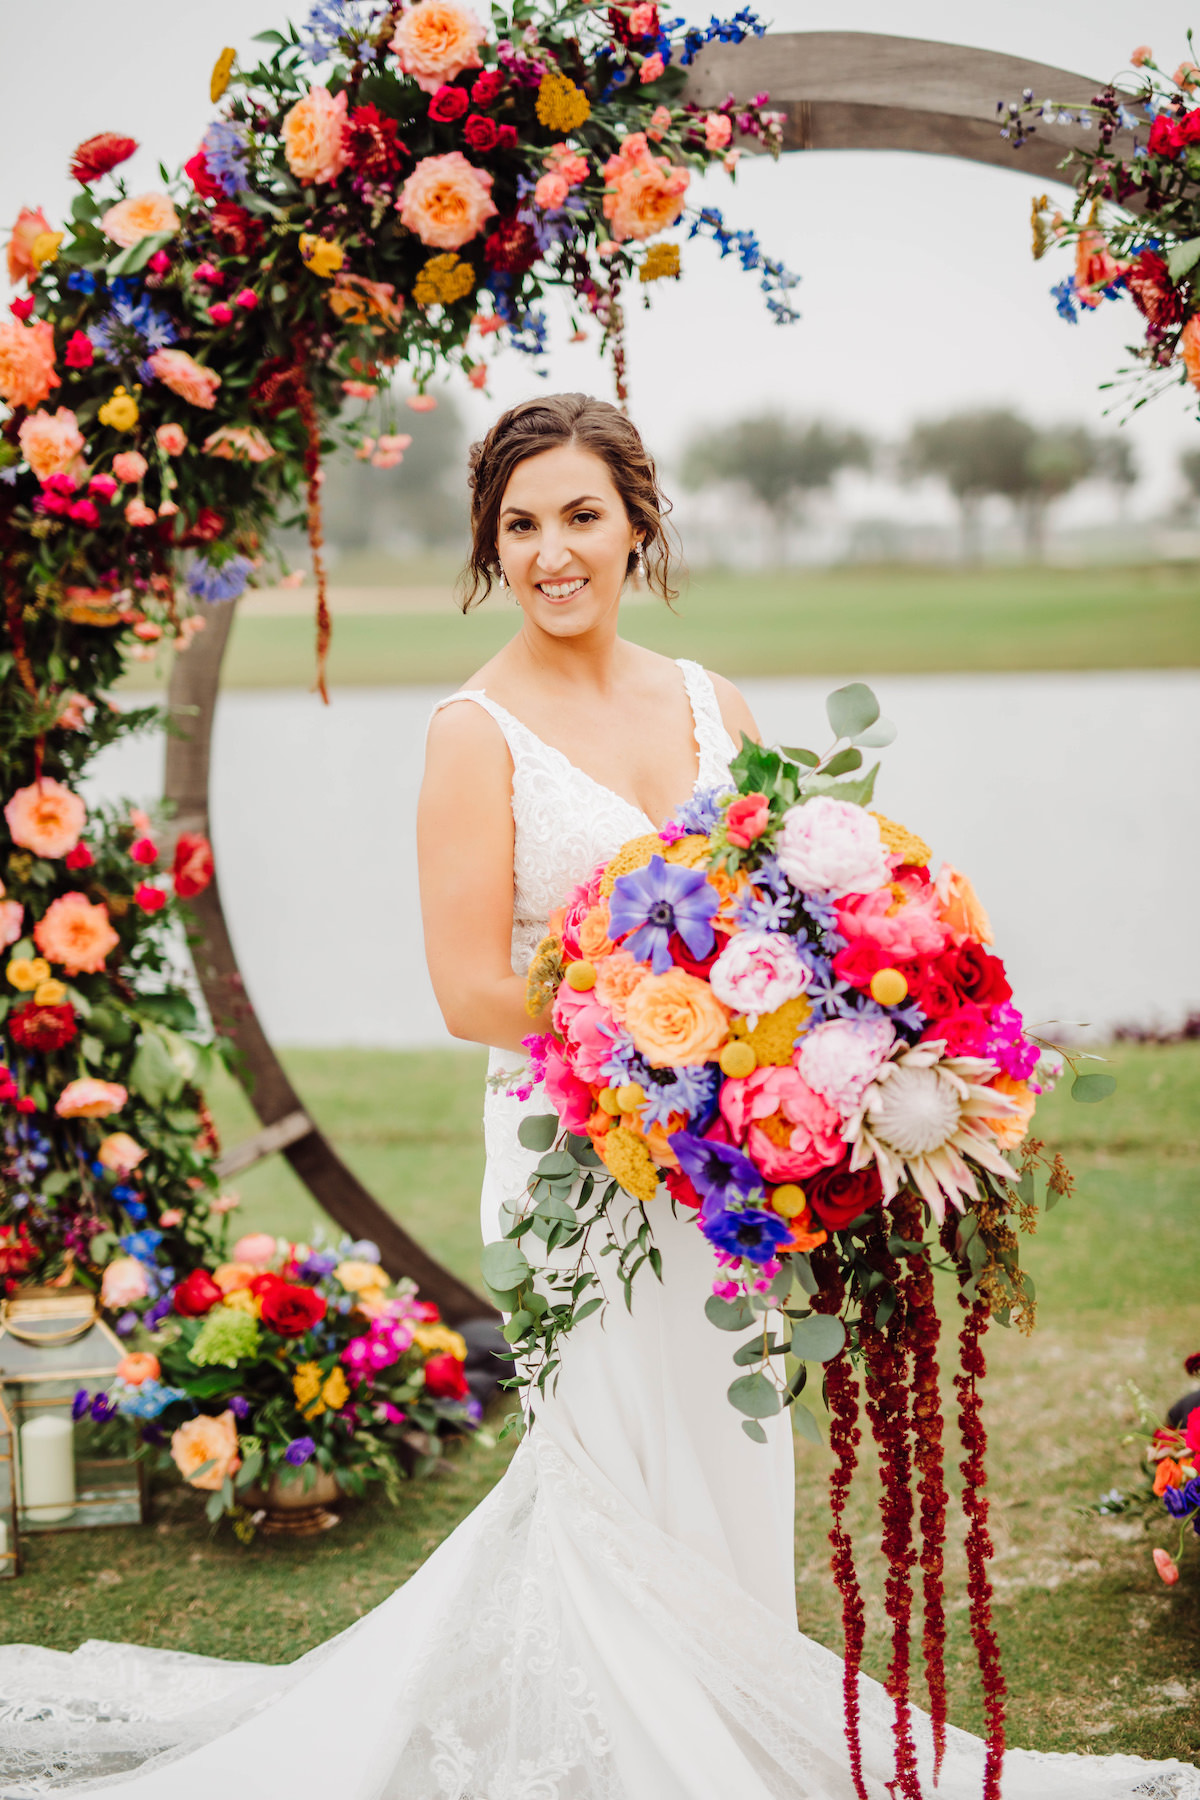 Summer colorful wedding - Bohemian Road Photography